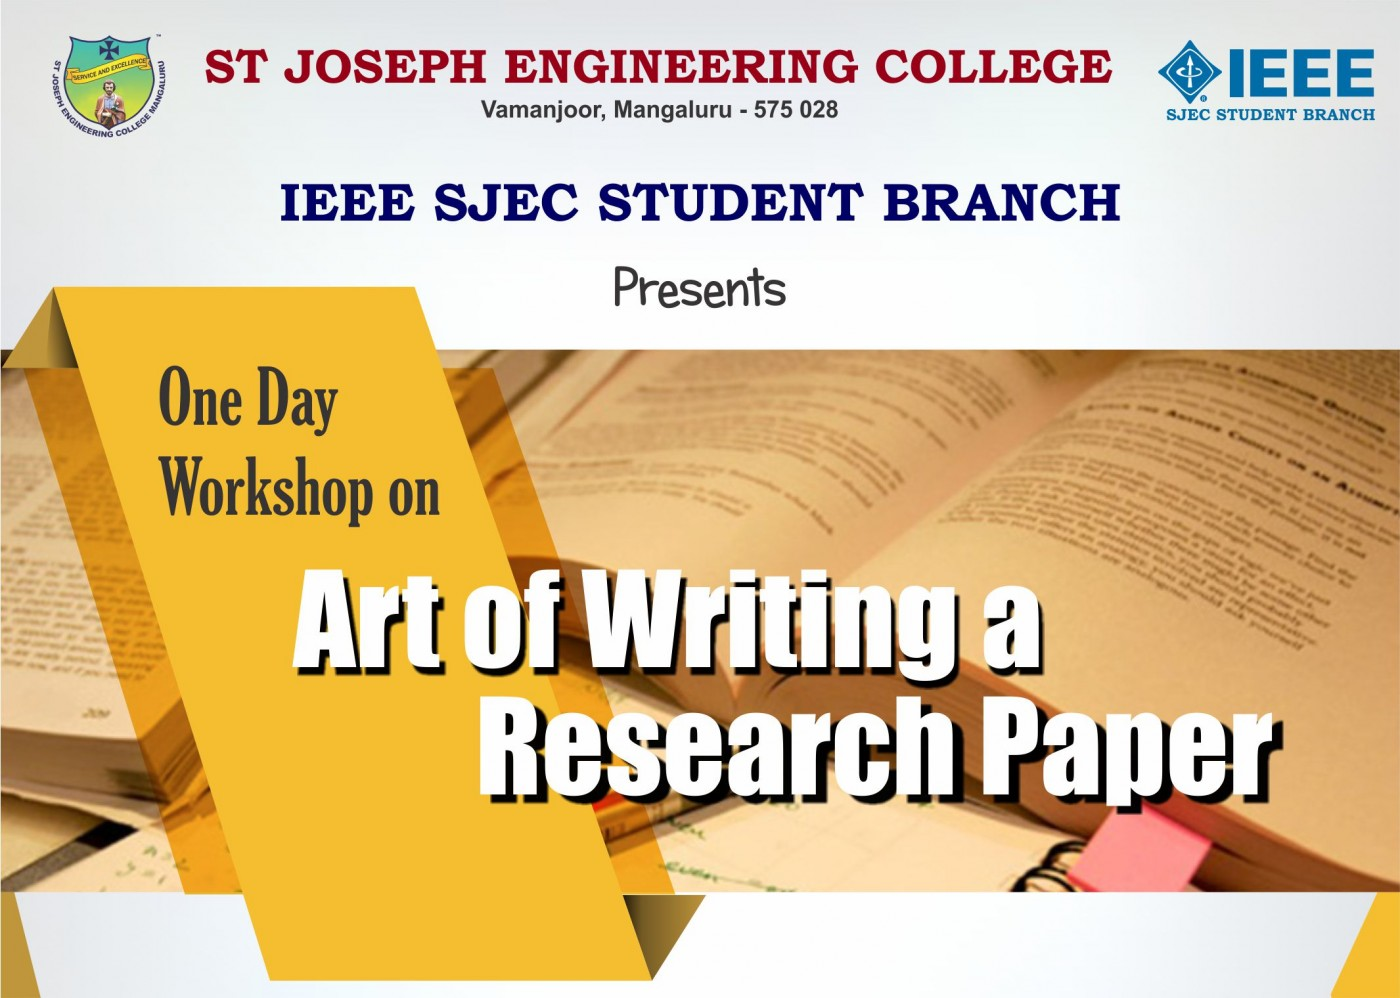 016 Writting Research Paper Workshop Dreaded A Tips For Writing Introduction Proposal Template In Apa Format 1400